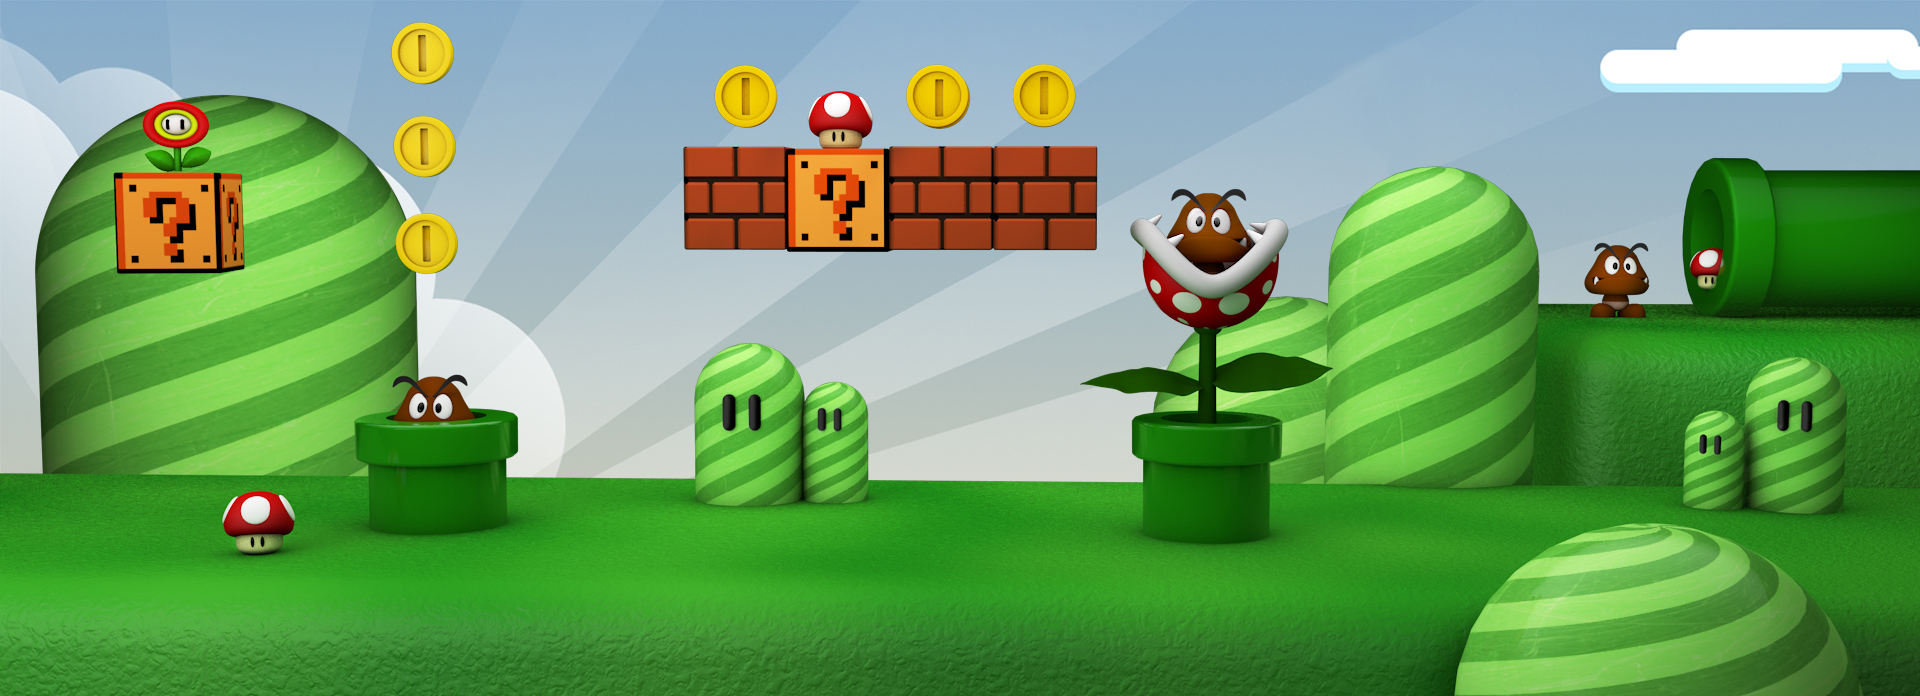 Super mario landscape by The3DLeopard